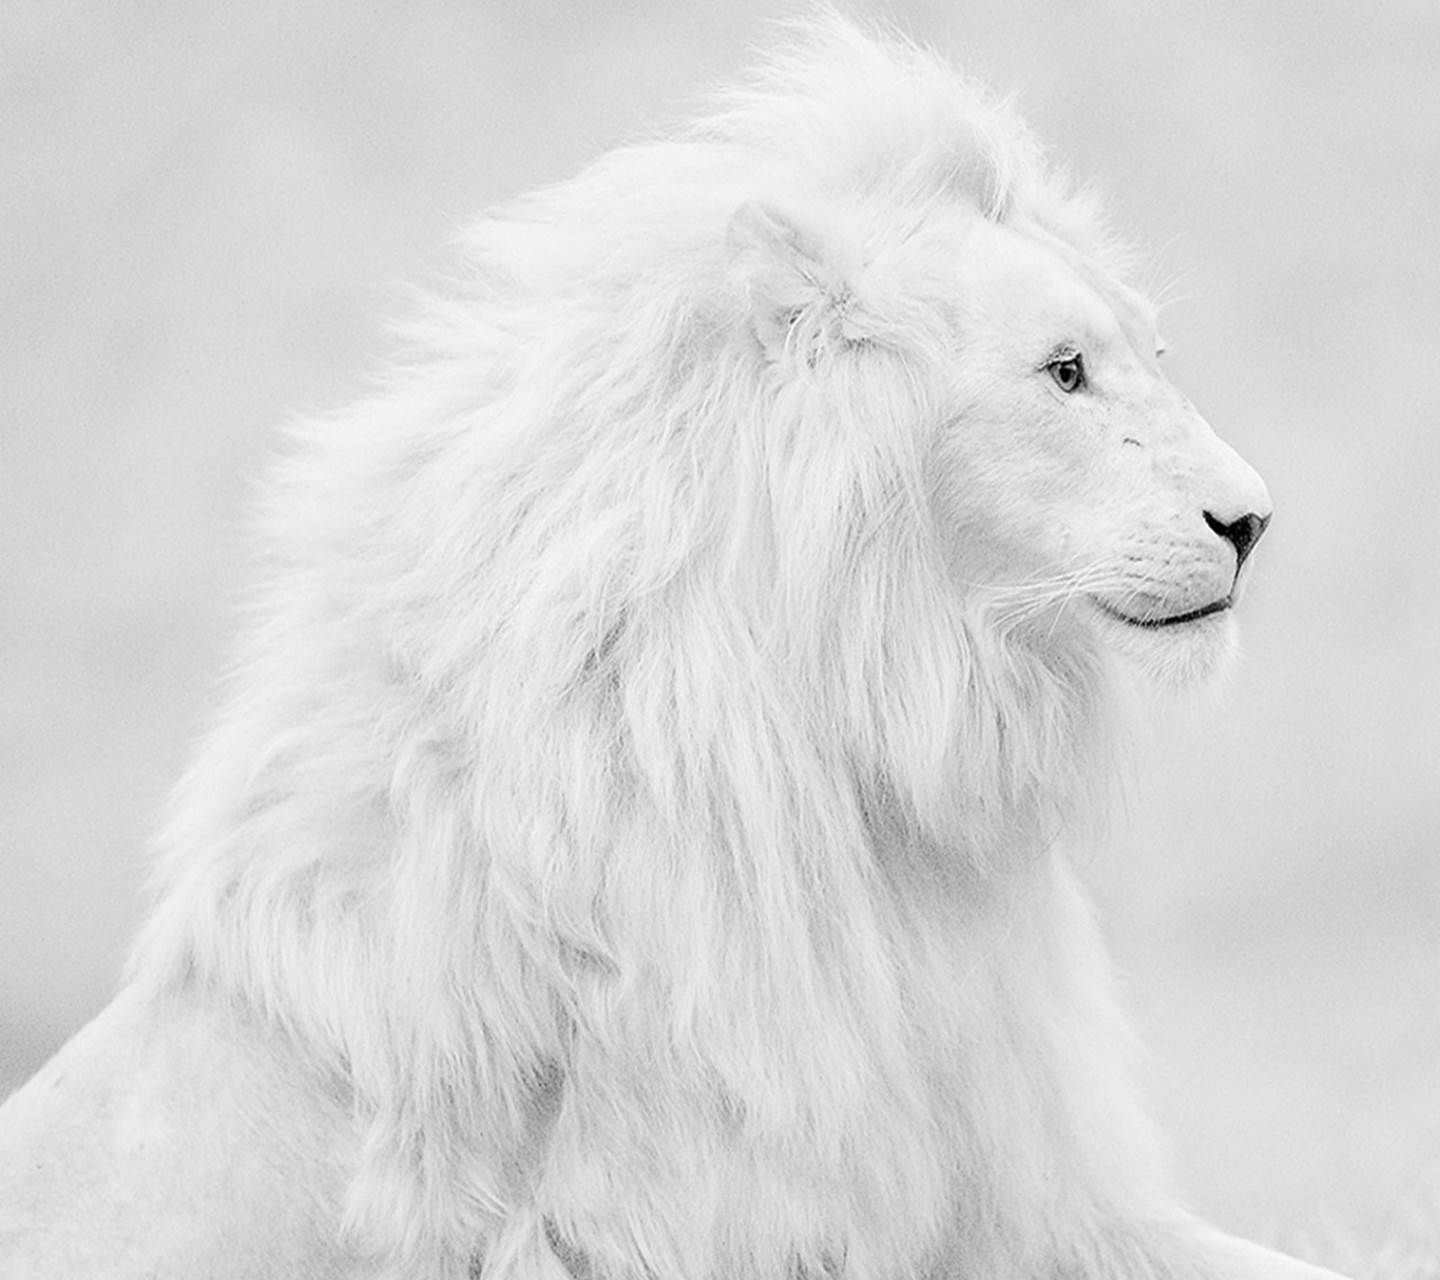 Lion - White Lion Wallpapers For Iphone , HD Wallpaper & Backgrounds